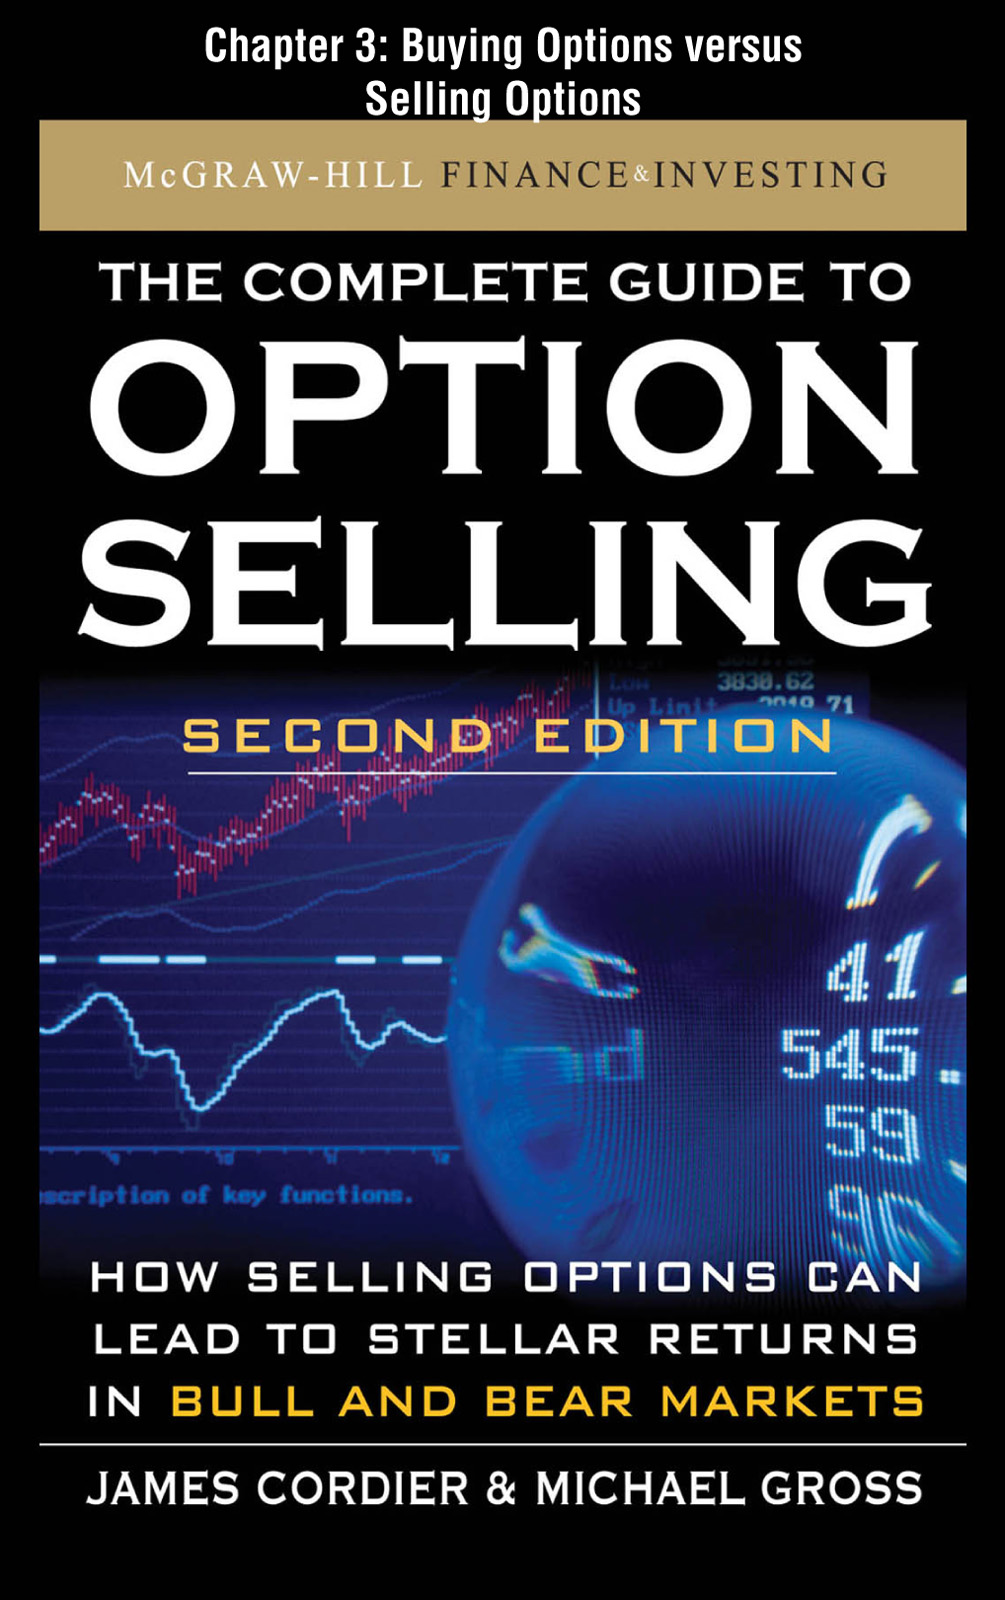 The Complete Guide to Option Selling, Second Edition, Chapter 3 - Buying Options versus Selling Options